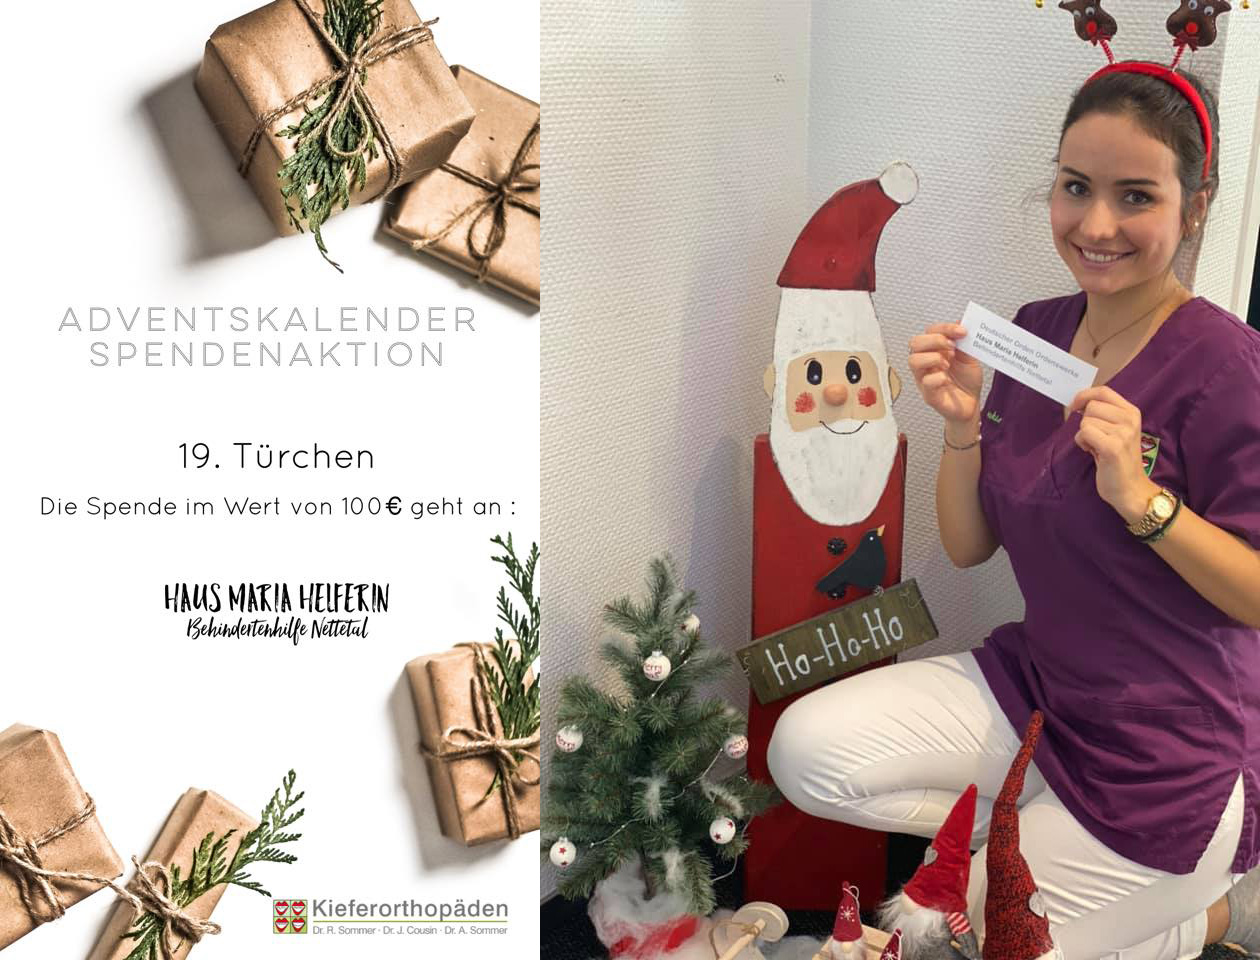 Adventskalender Spendenaktion · 19. Türchen